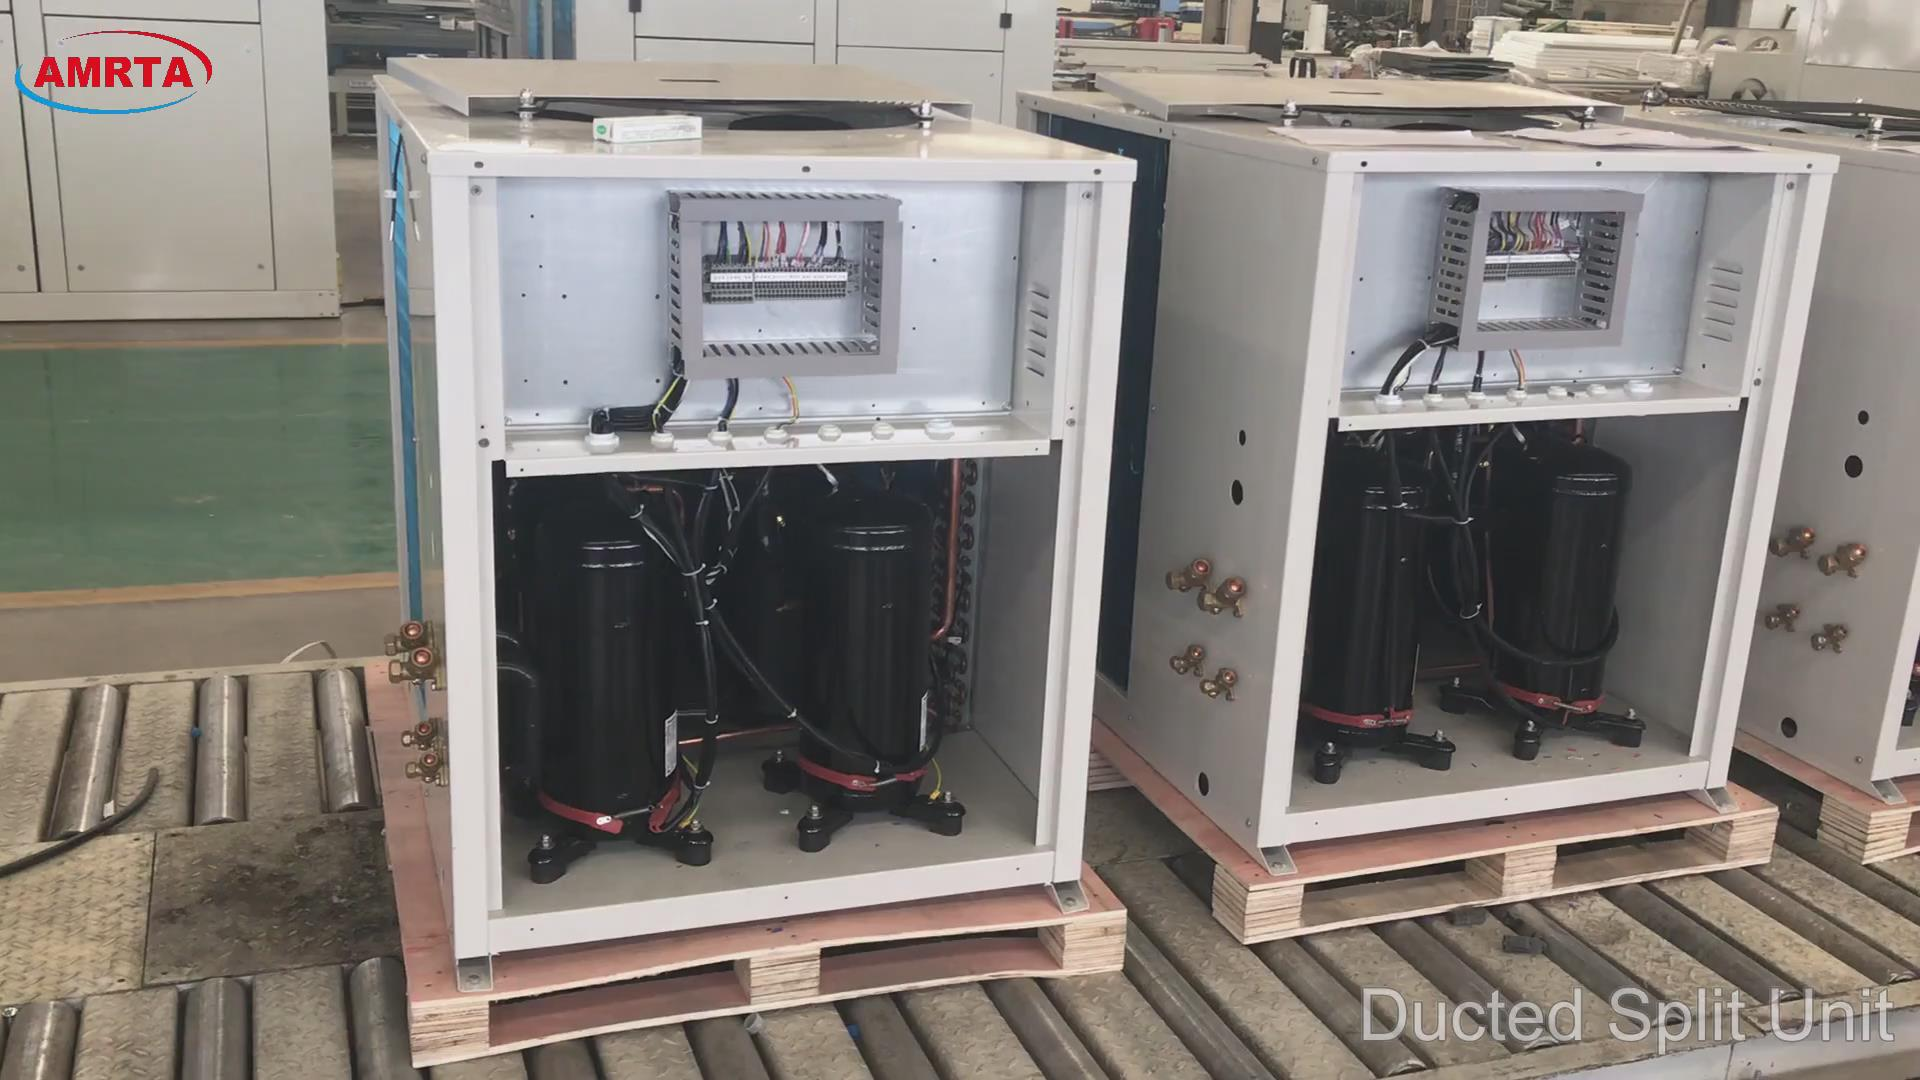 Ducted Split Air Conditioner for Office Building